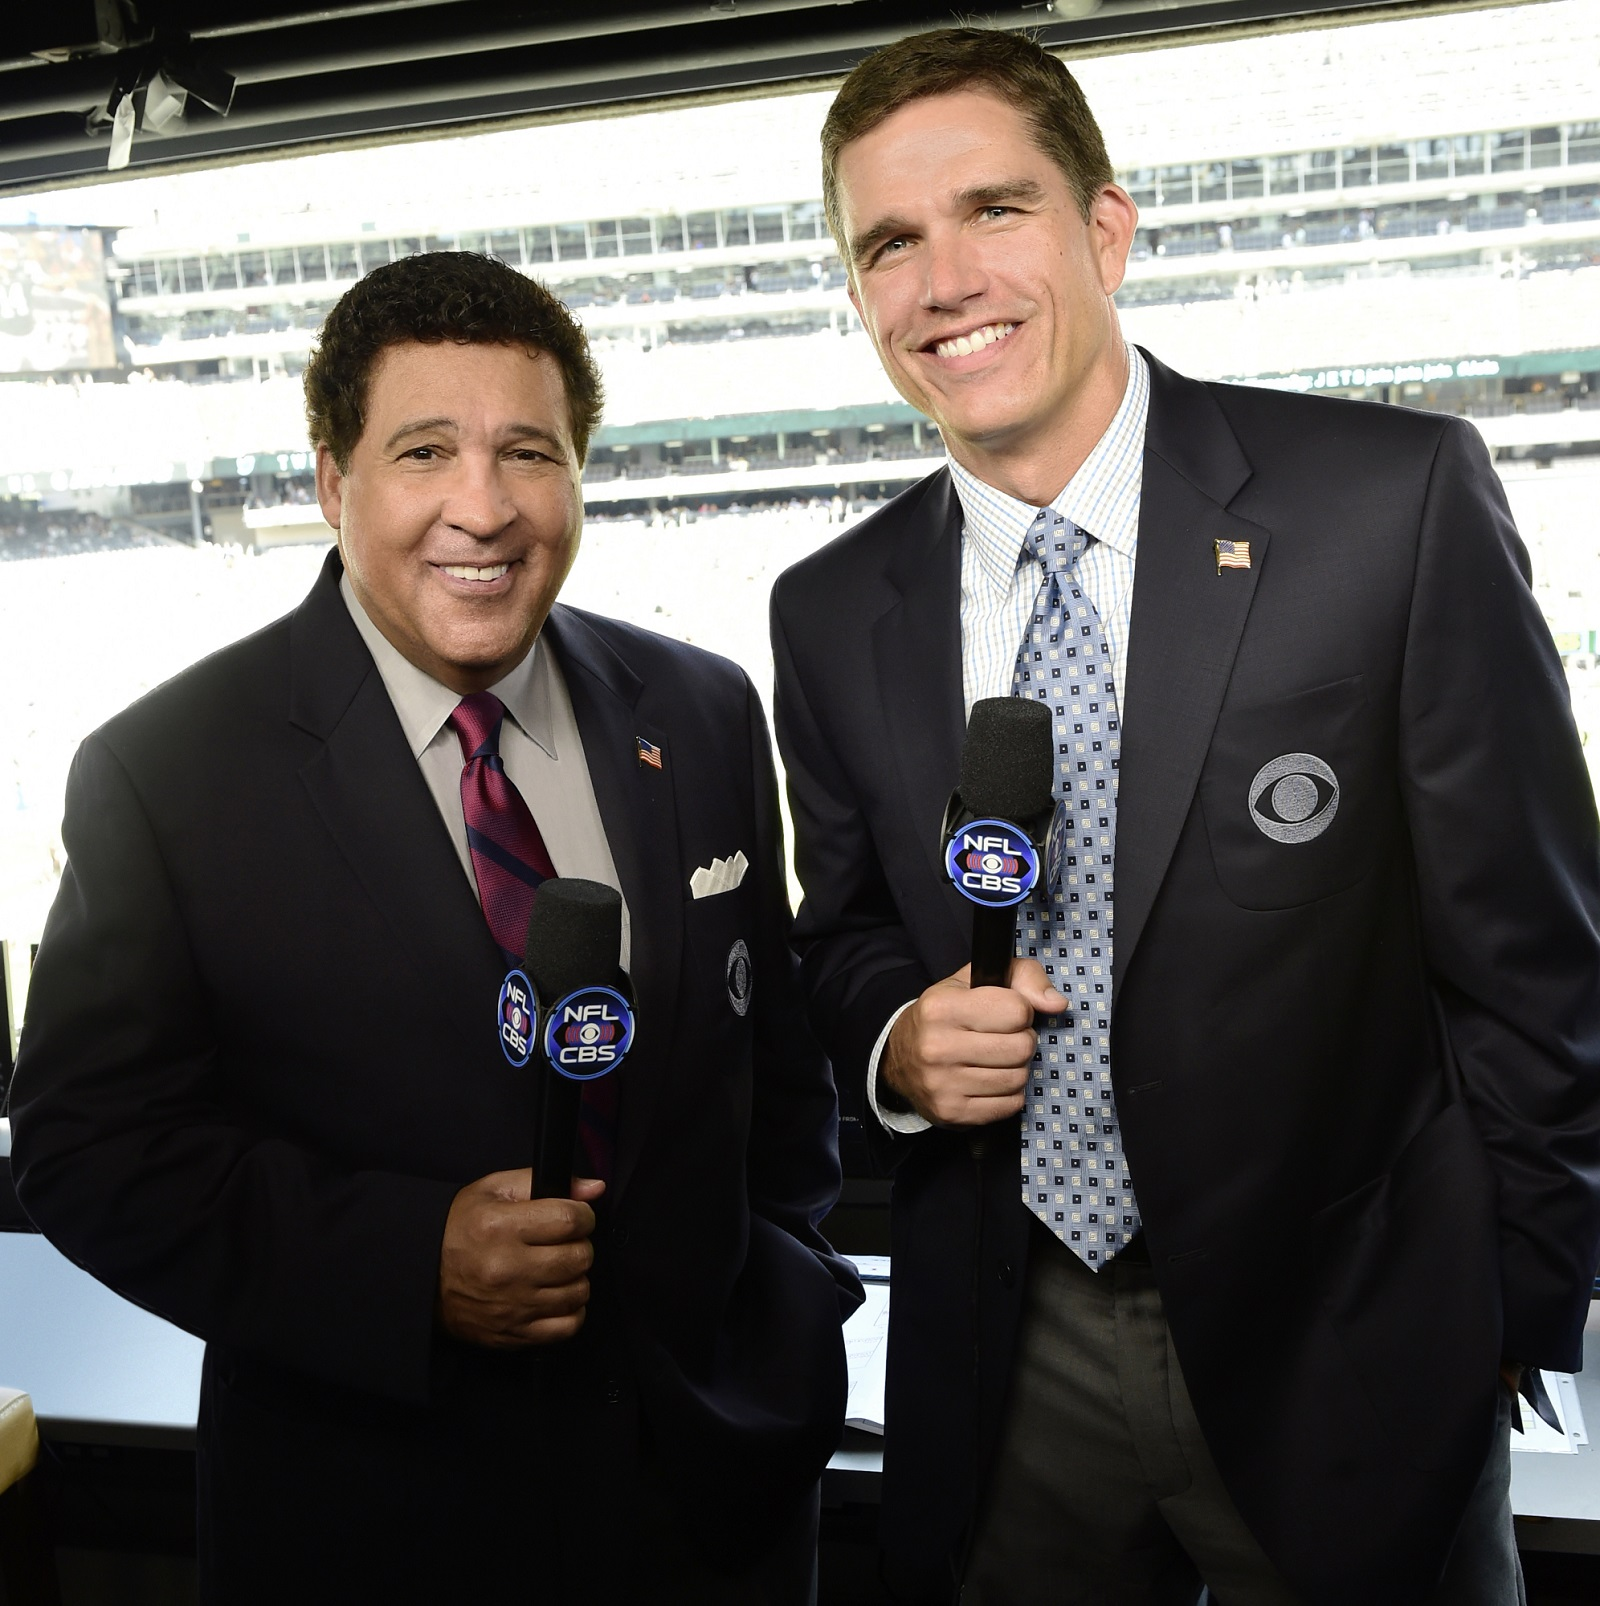 CBS NFL play-by-play announcer Greg Gumbel and analyst Trent Green. (Photo: John Paul Filo/CBS)